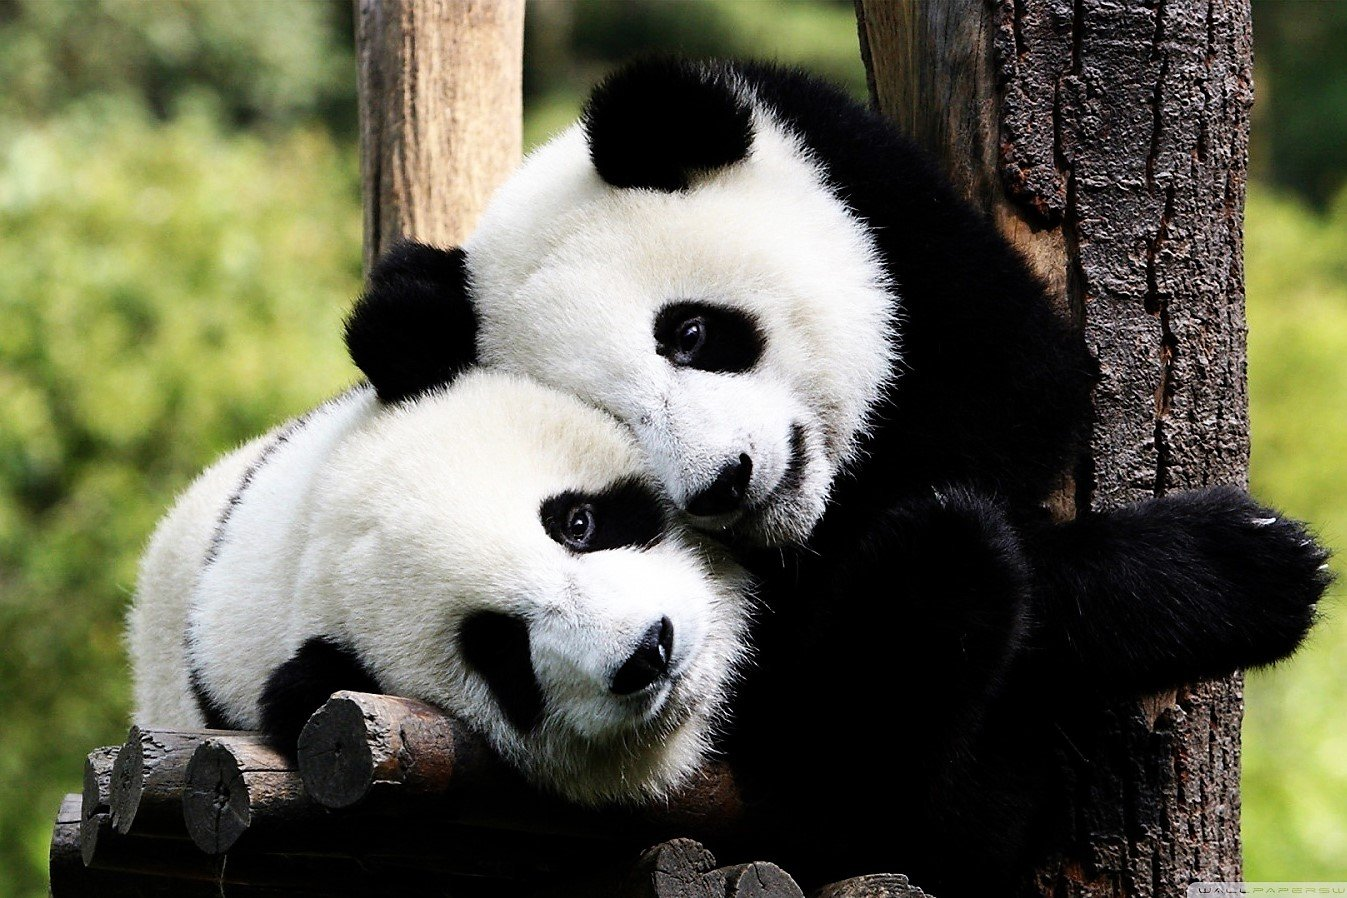 How to hug a panda in Chengdu